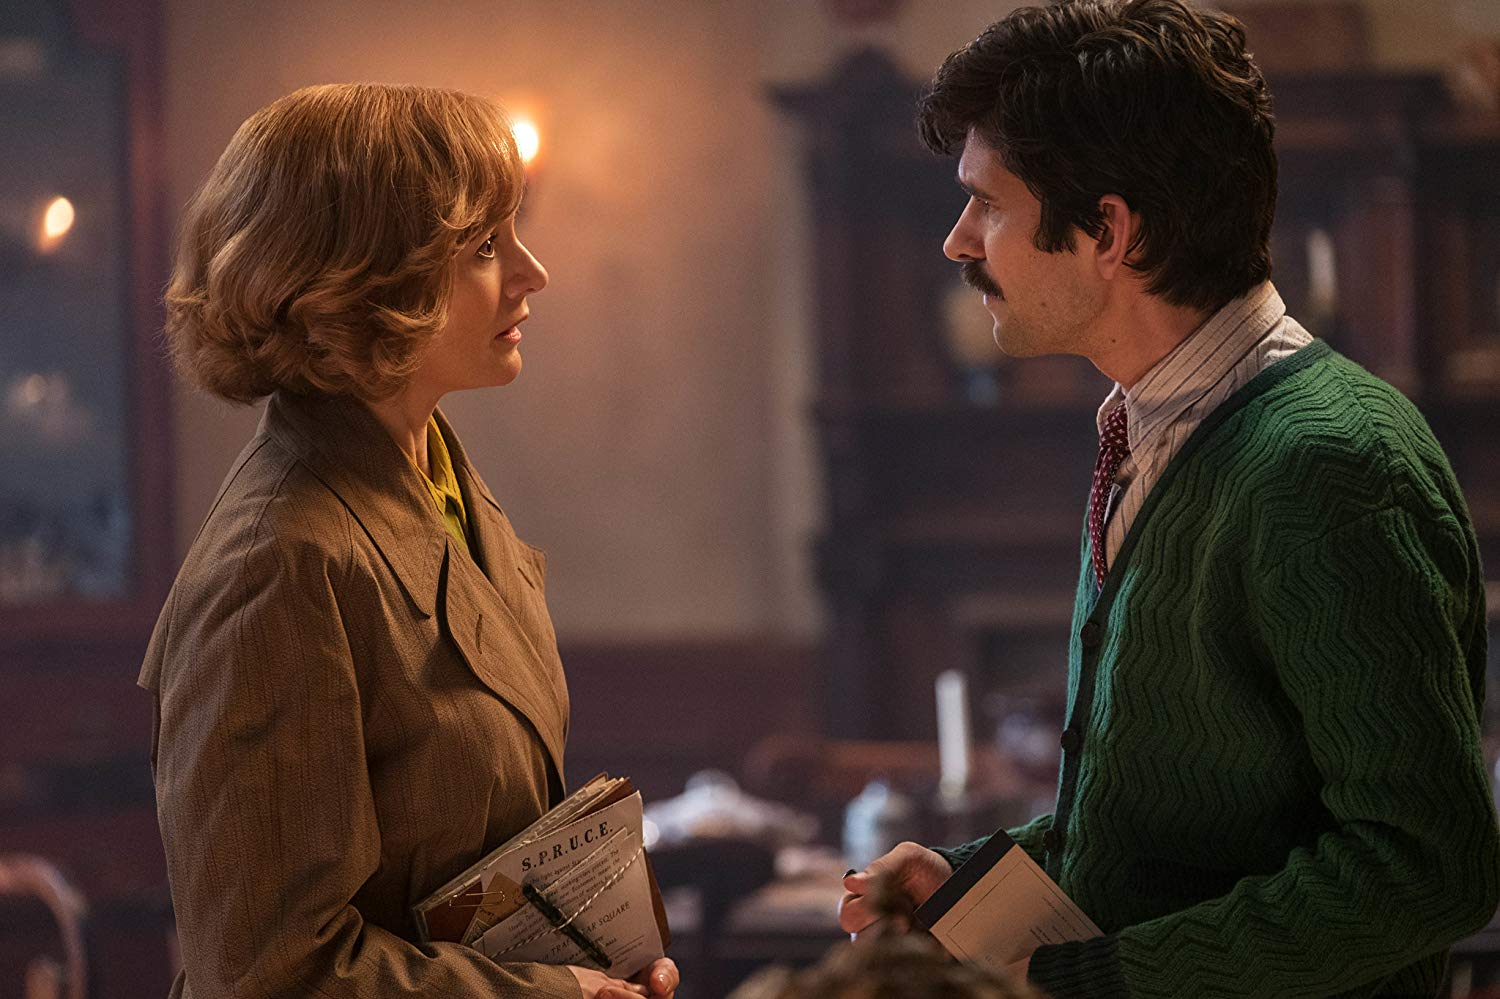 TROUBLE. Michael Banks (Ben Whishaw) talks with his sister Jane as they try to solve their problems with the house.